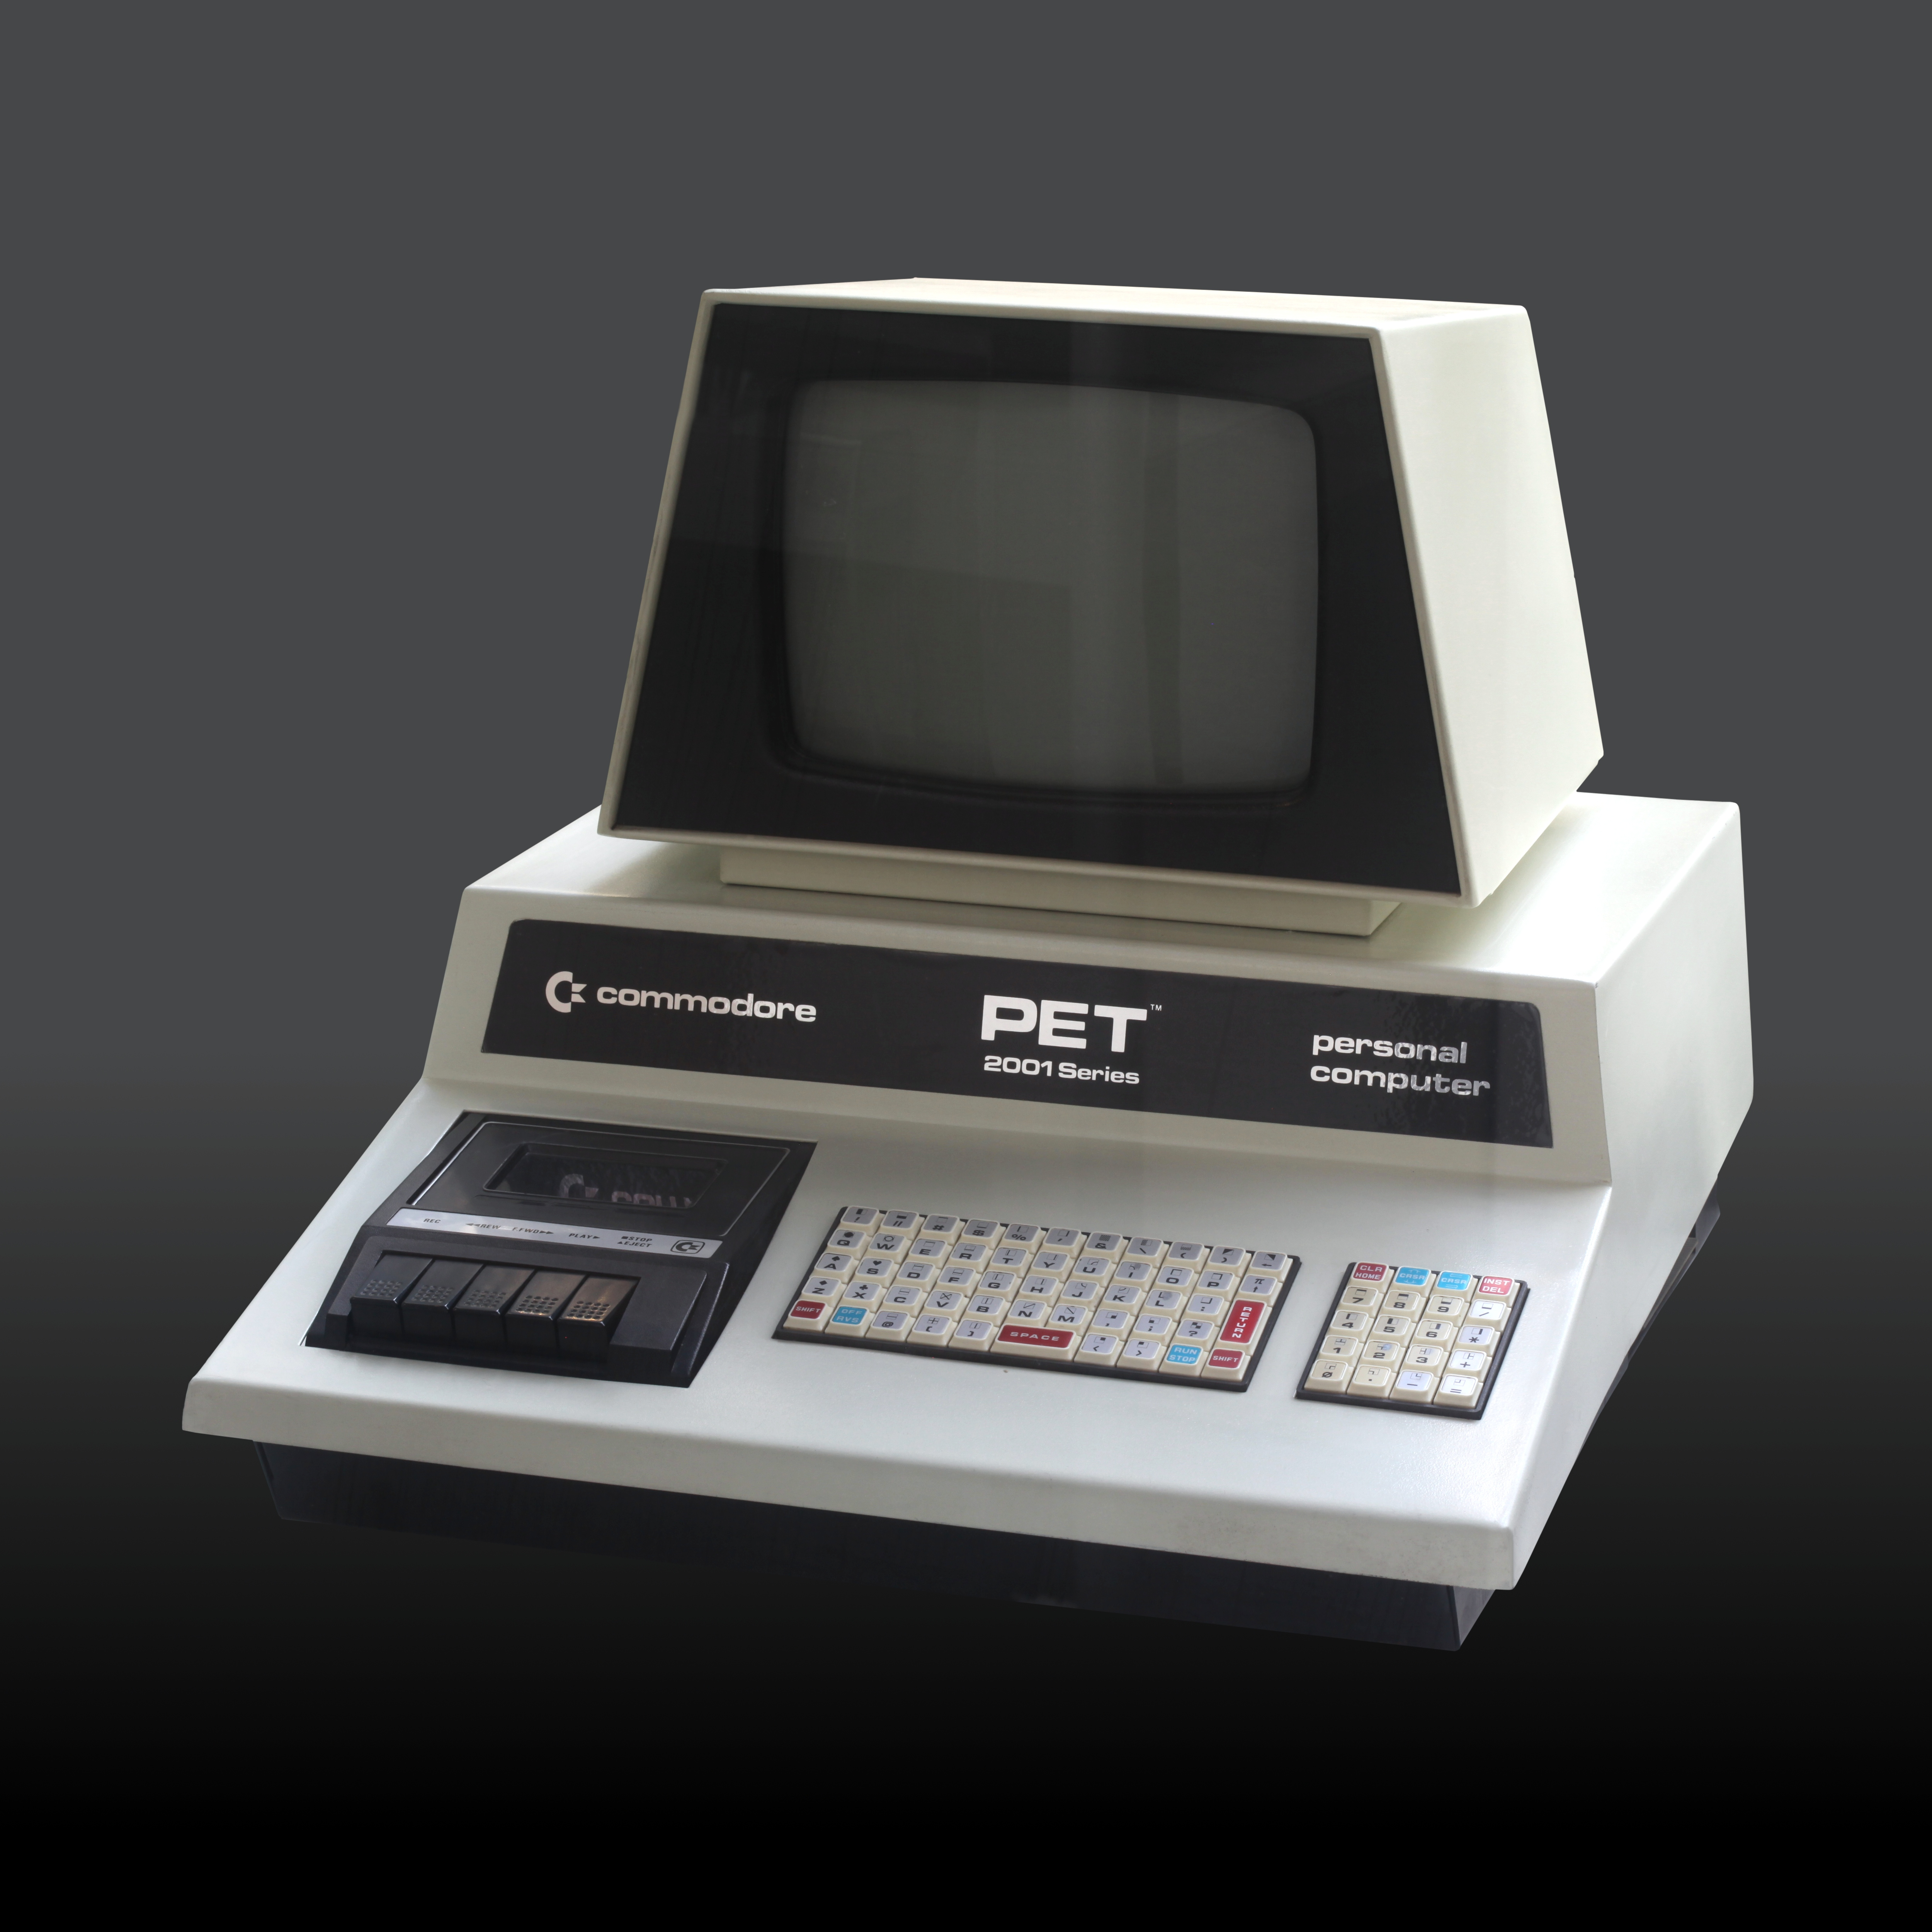 Picture of a Commodore PET 2001 computer from 1977.